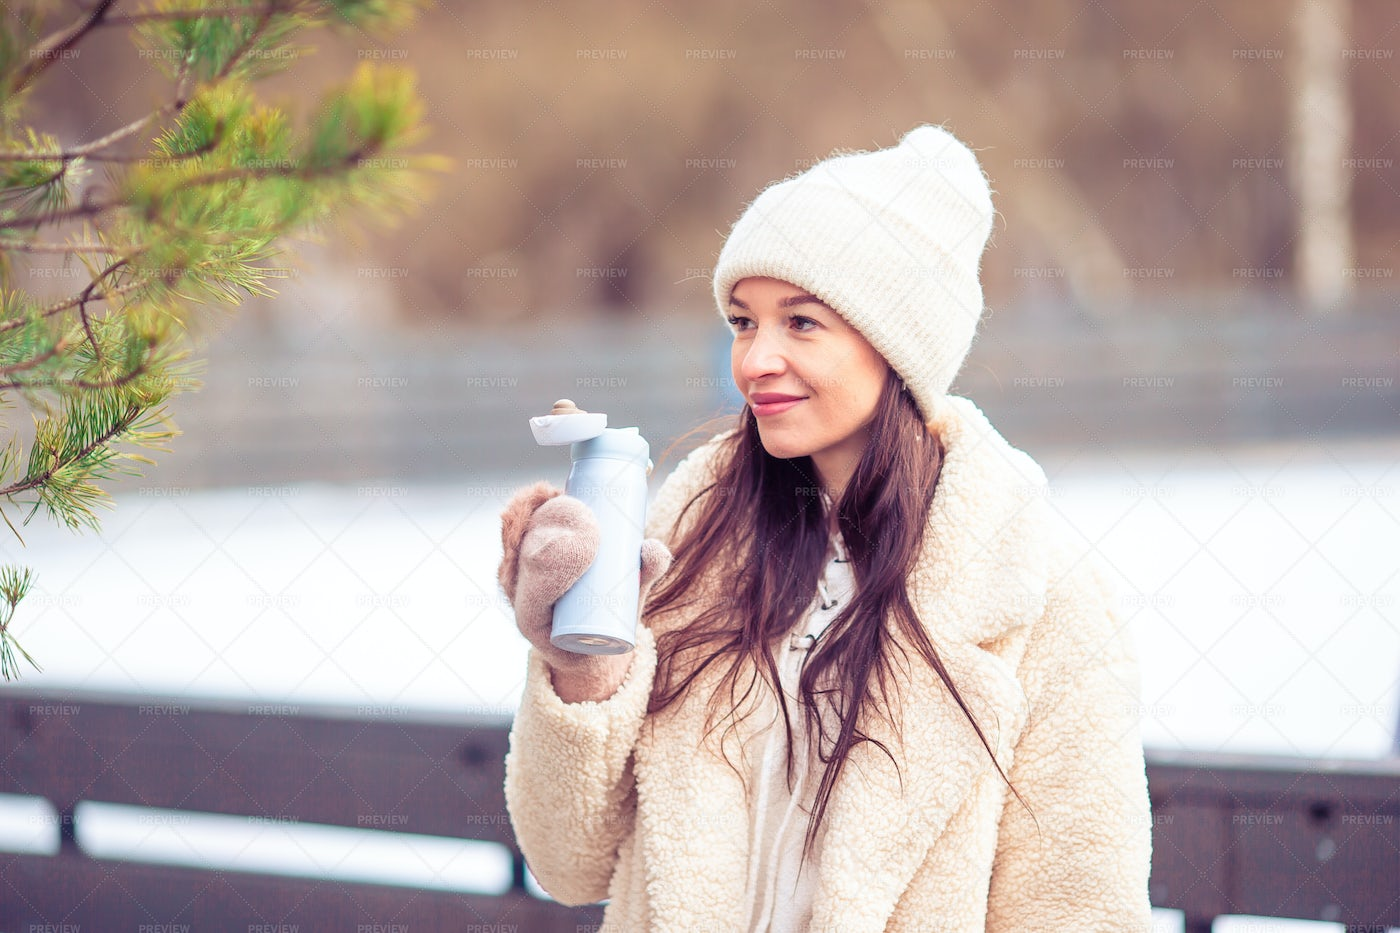 Woman Smiling In A Cold Weather: Stock Photos